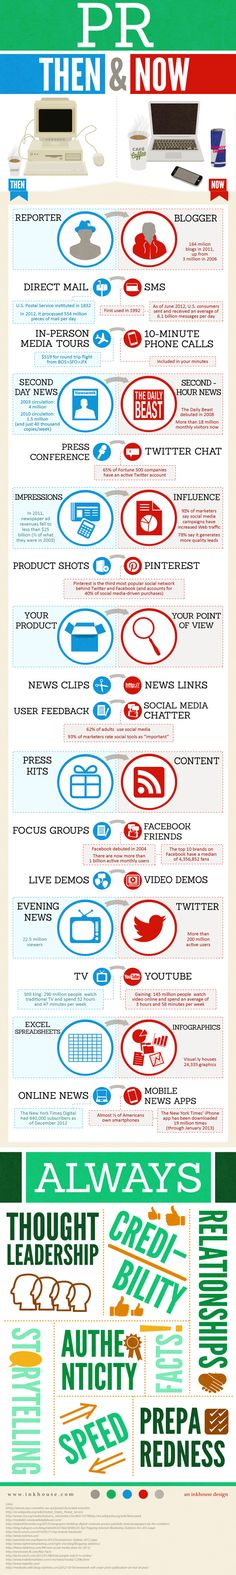 Social Media & PR: Then & Now. #infographic